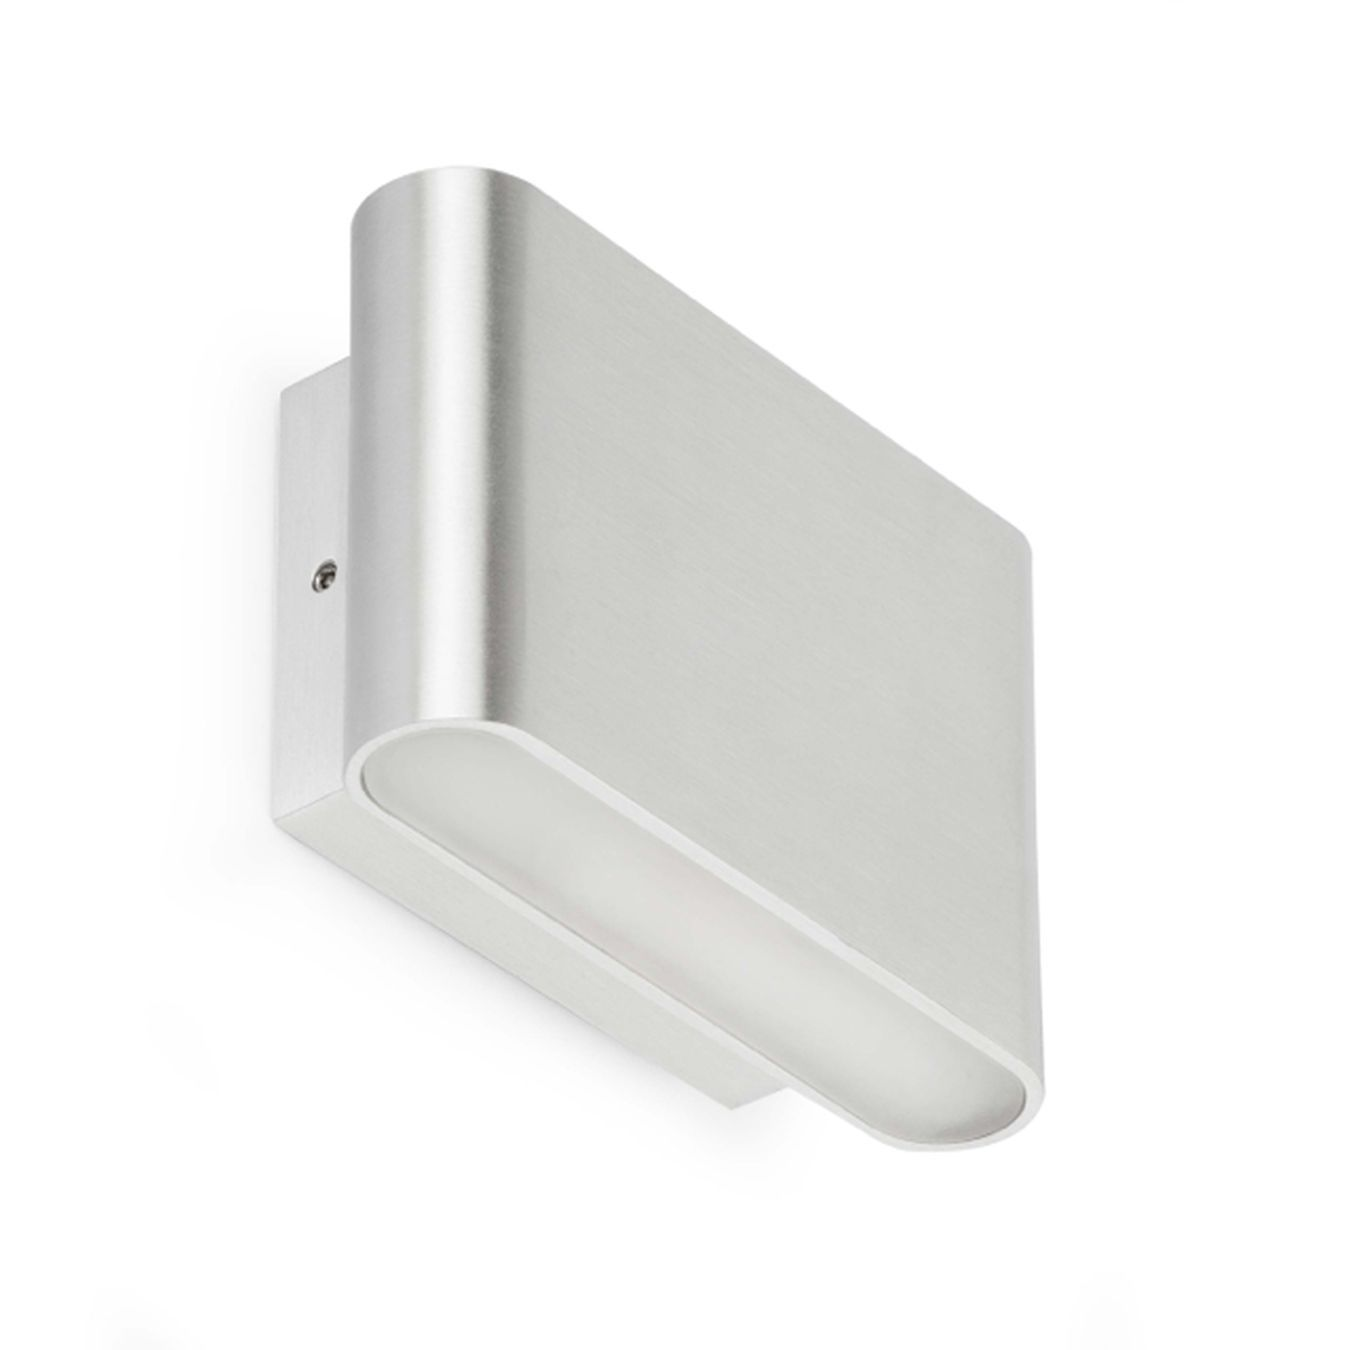 Aplique De Pared Para Ba Os De Led Iluminacion Lamparas  ~ Apliques De Pared Para Escaleras